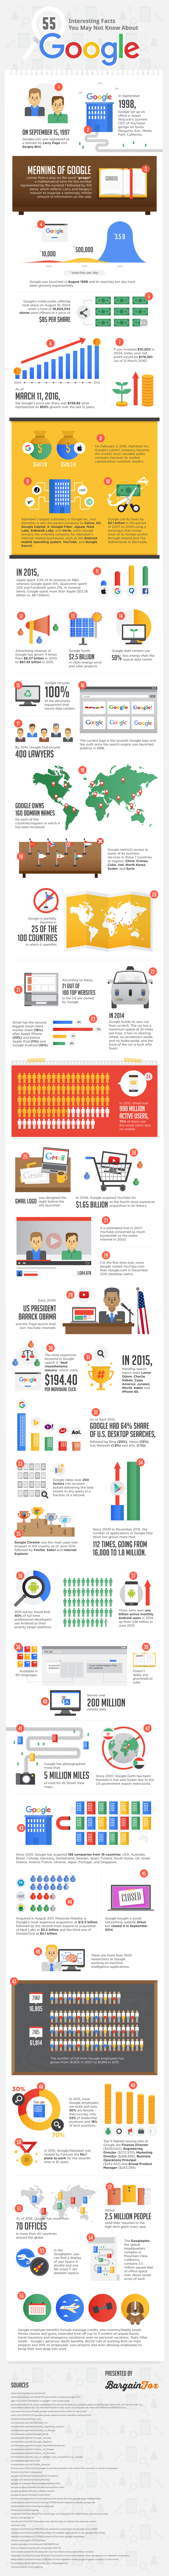 55 Facts You May Not Know About Google